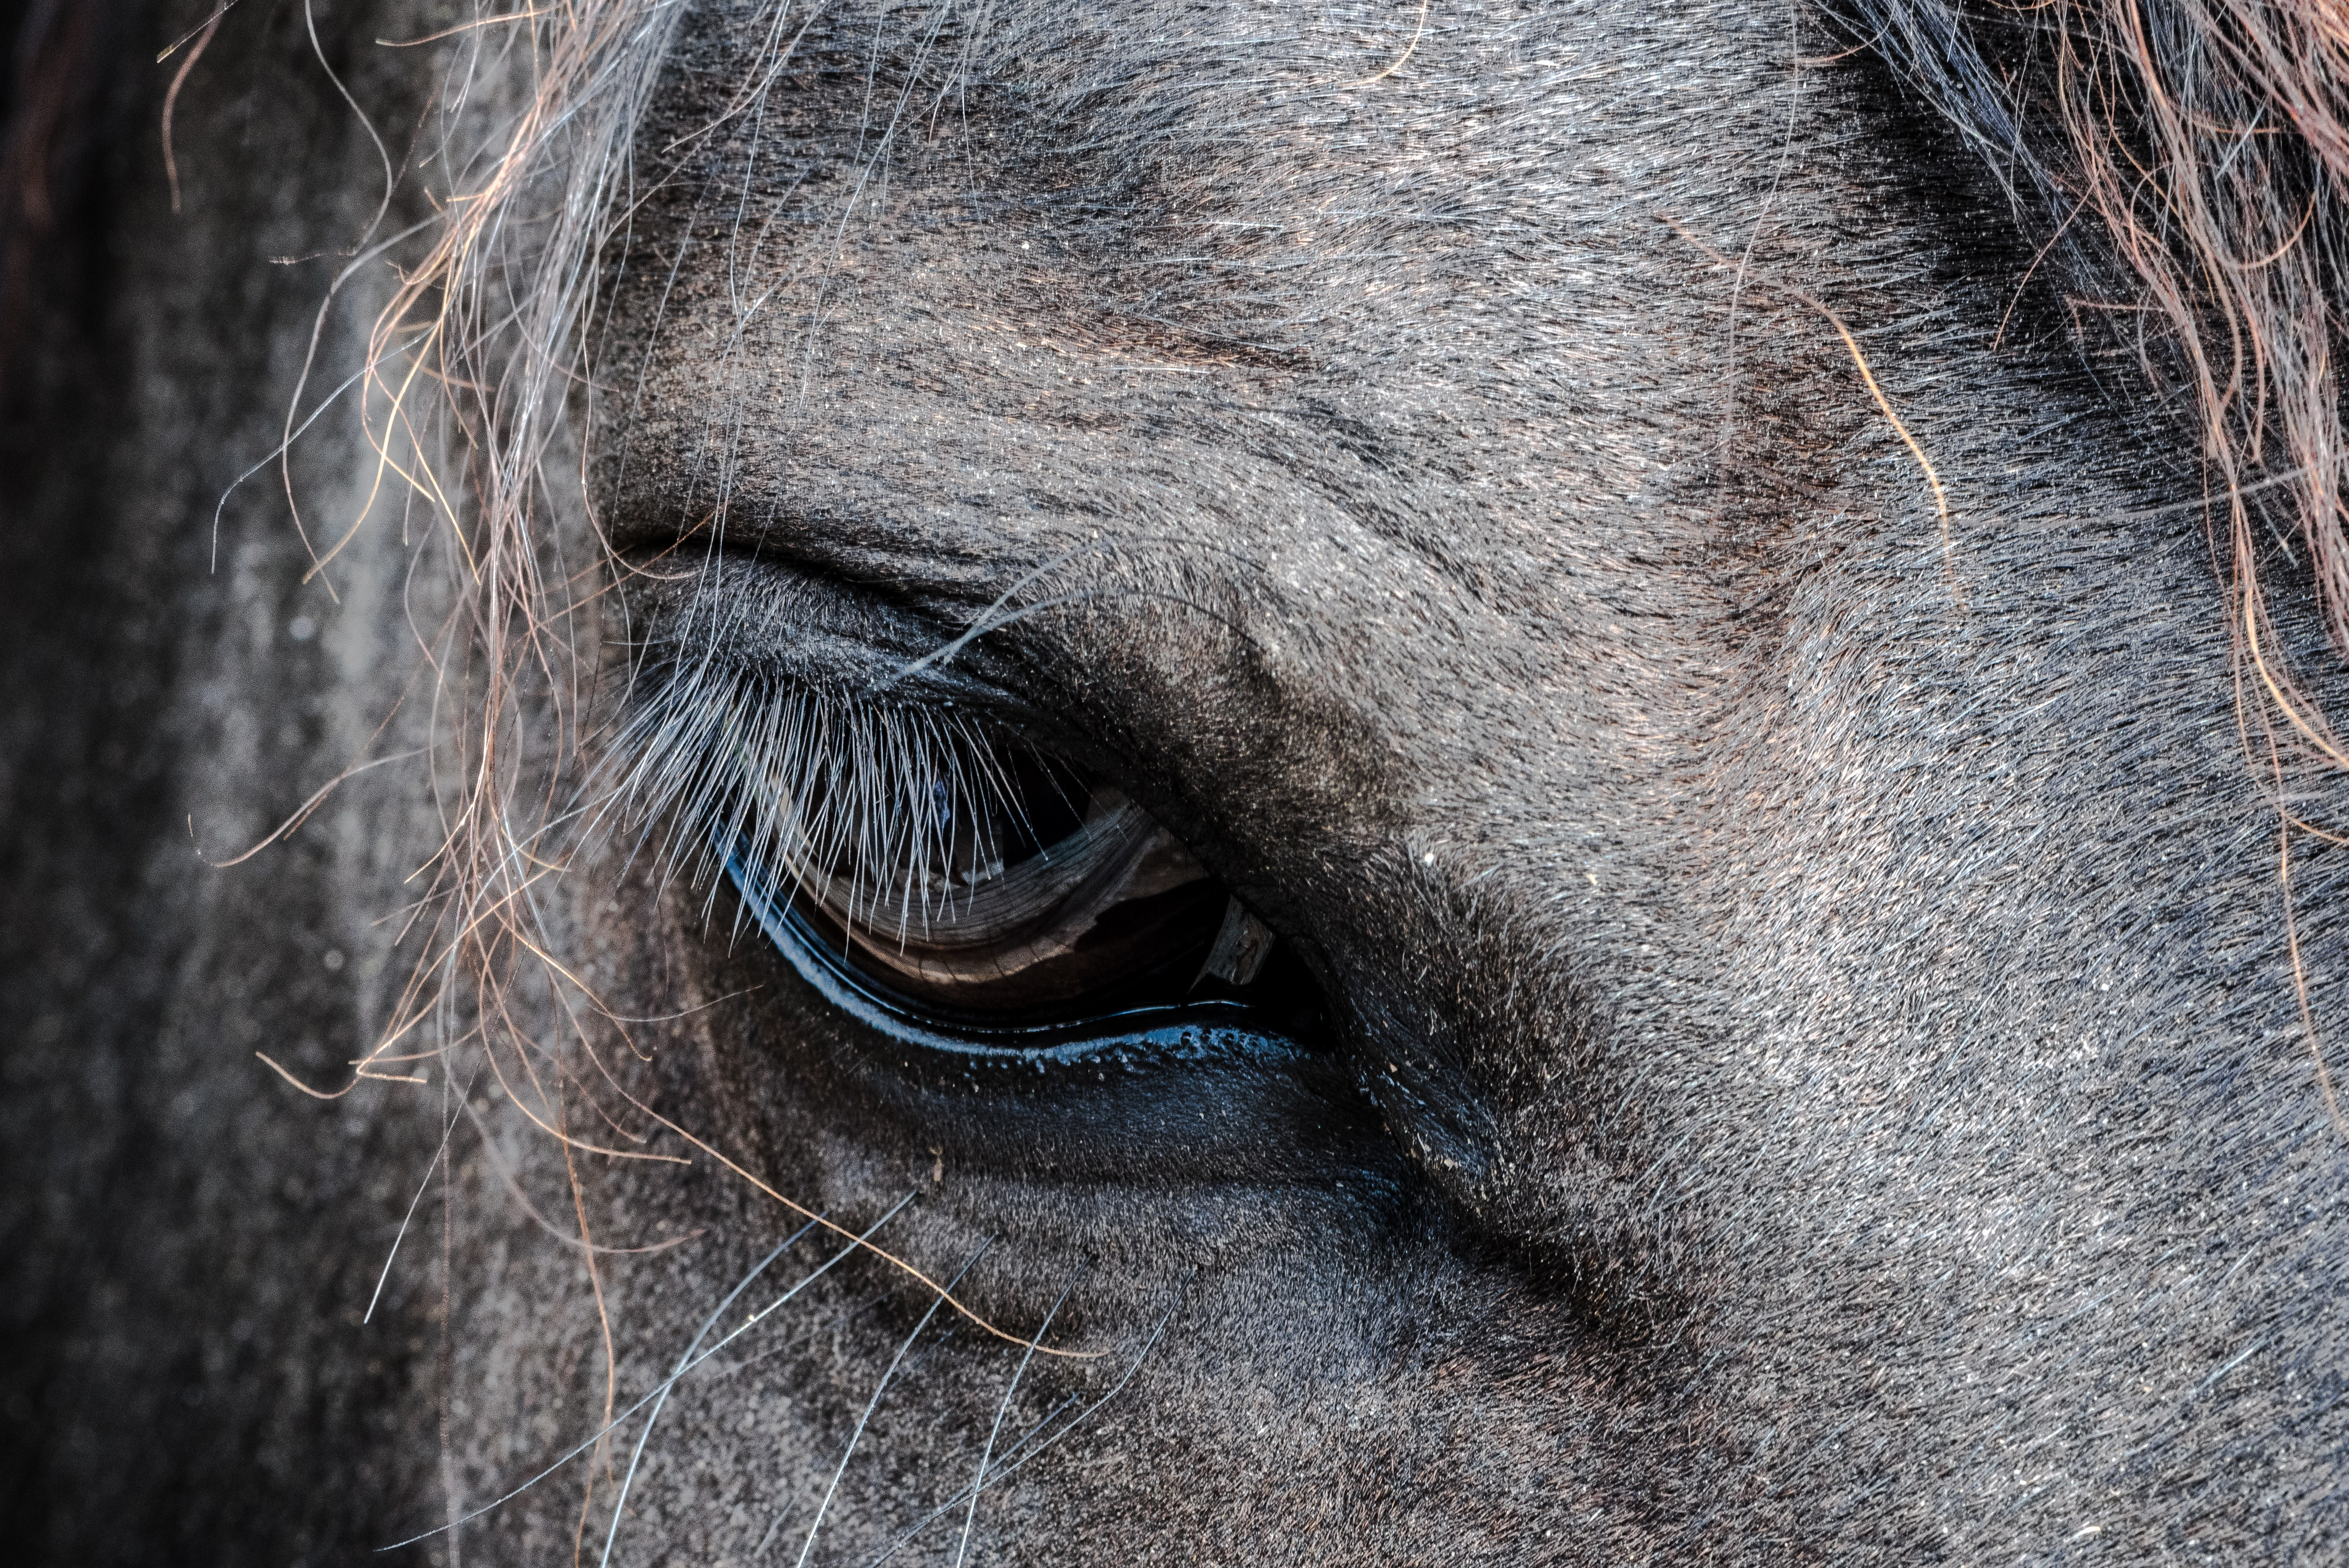 close-up photo of gray horse's eye